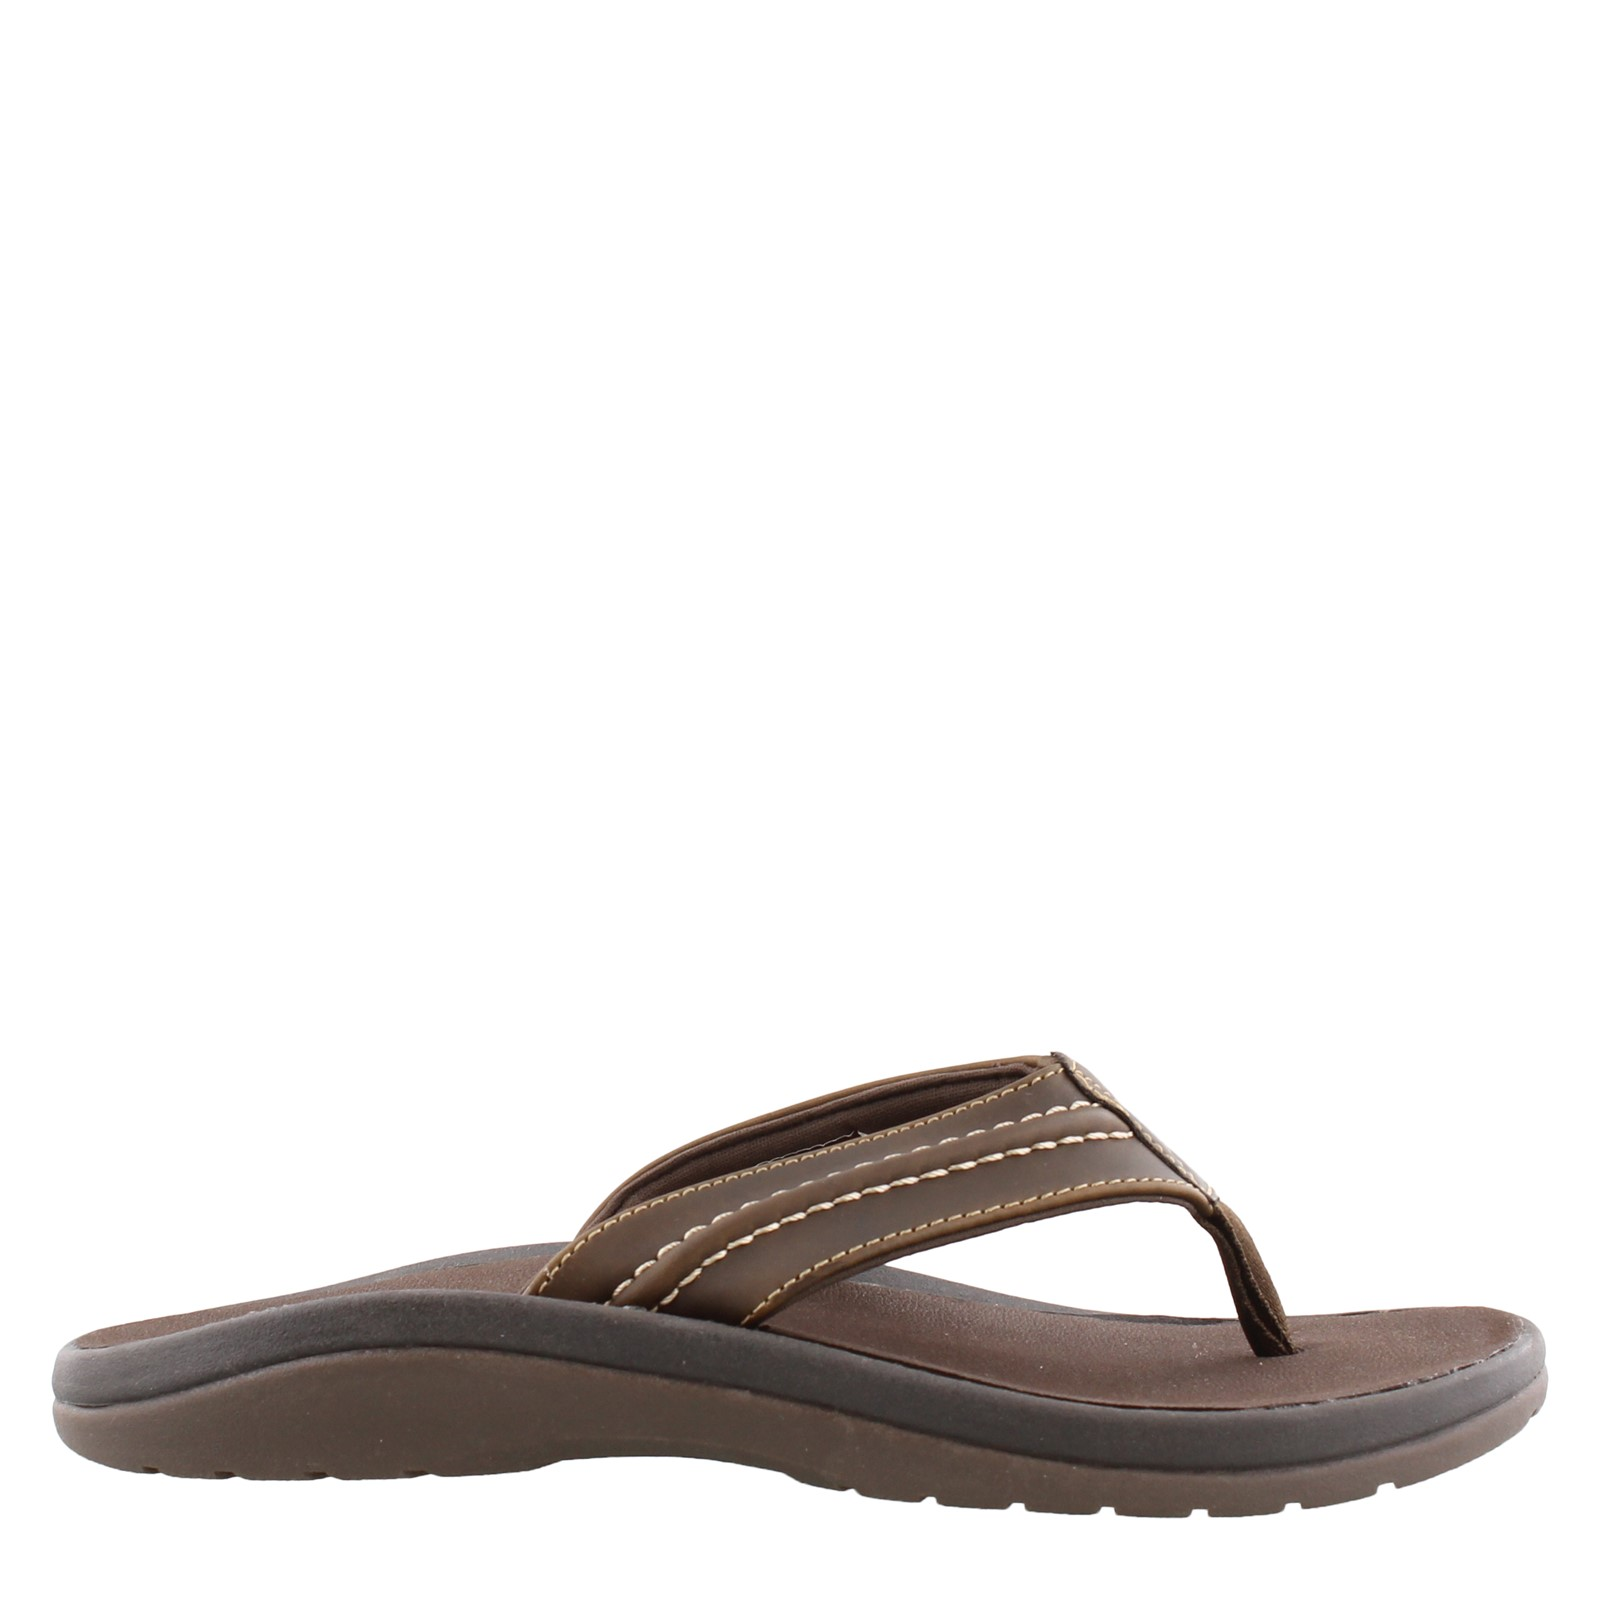 Men's Dockers, Pacific Thong Sandal